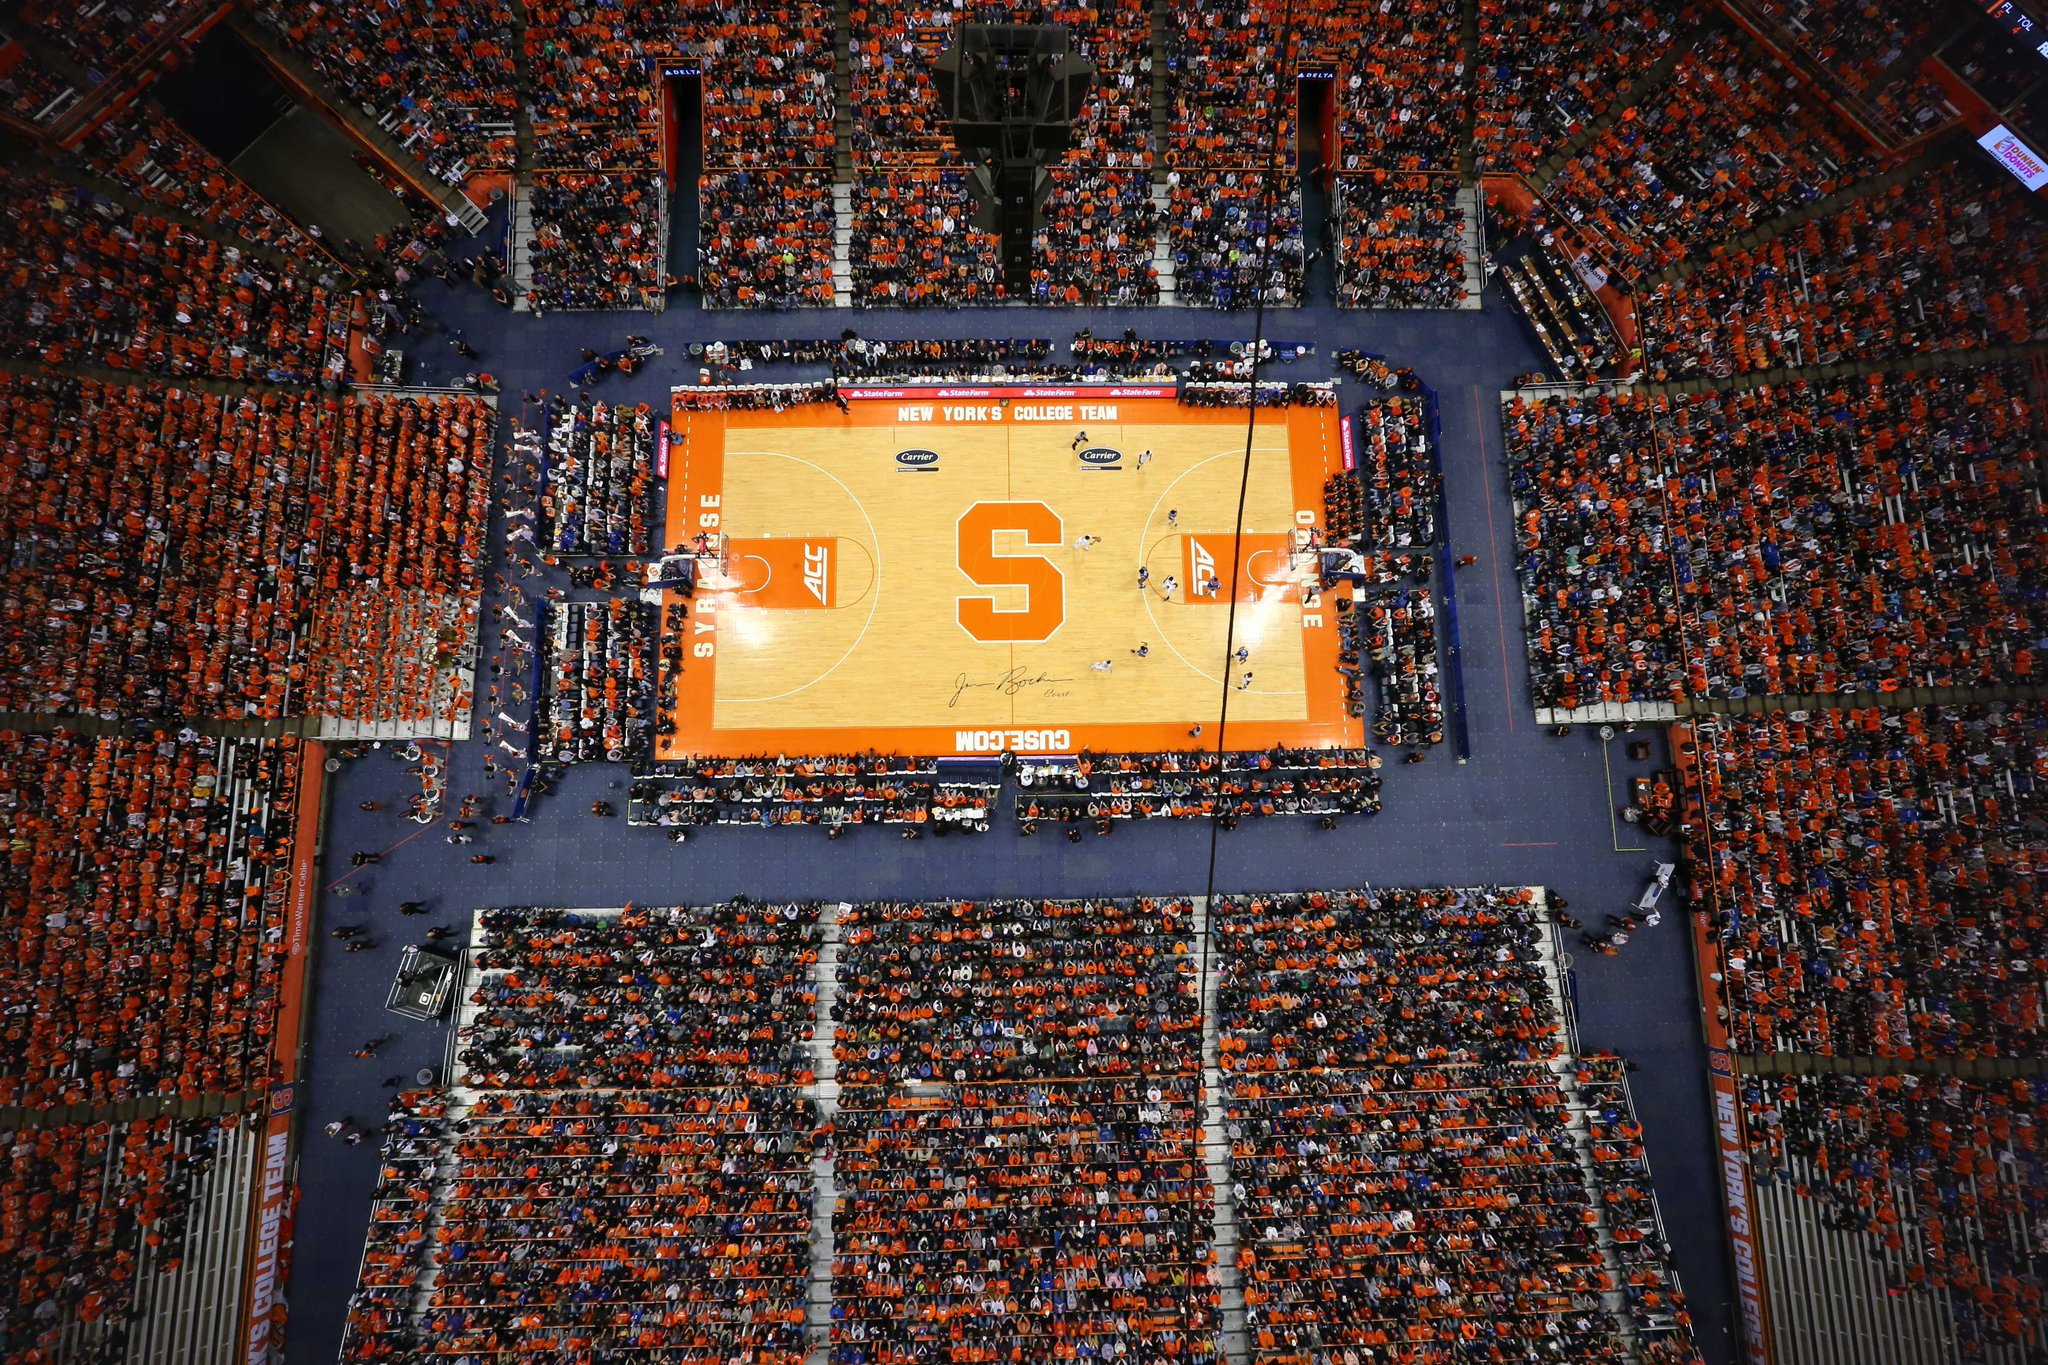 RT @Cuse_MBB: The view from the @CarrierDome44 roof tonight! 35,446 #DUKEvsCUSE #CuseMode http://t.co/ovDhFzPURE